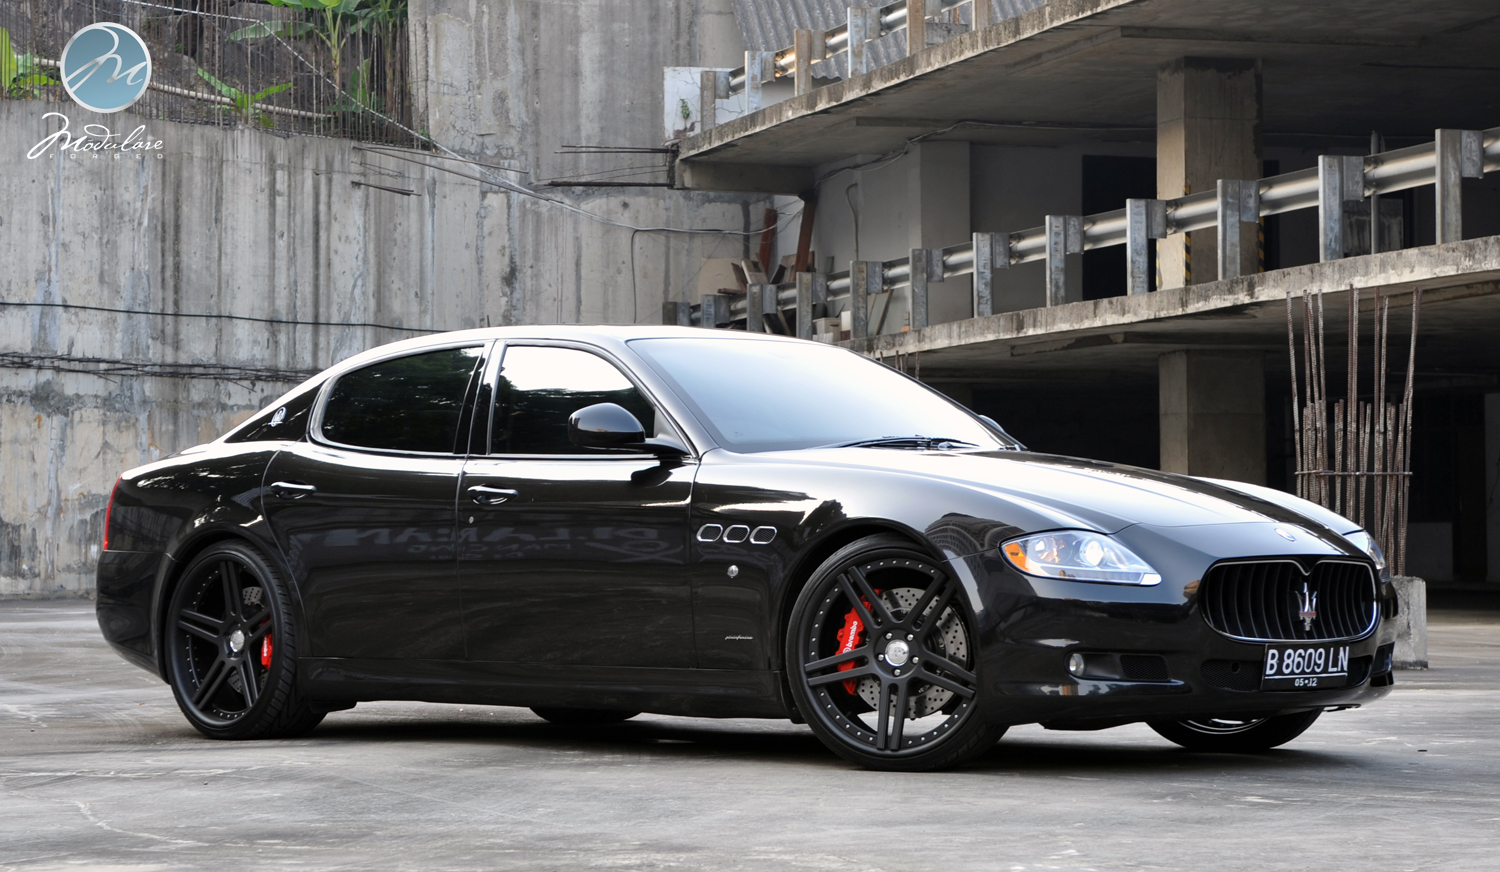 Blacked out maserati quattroporte